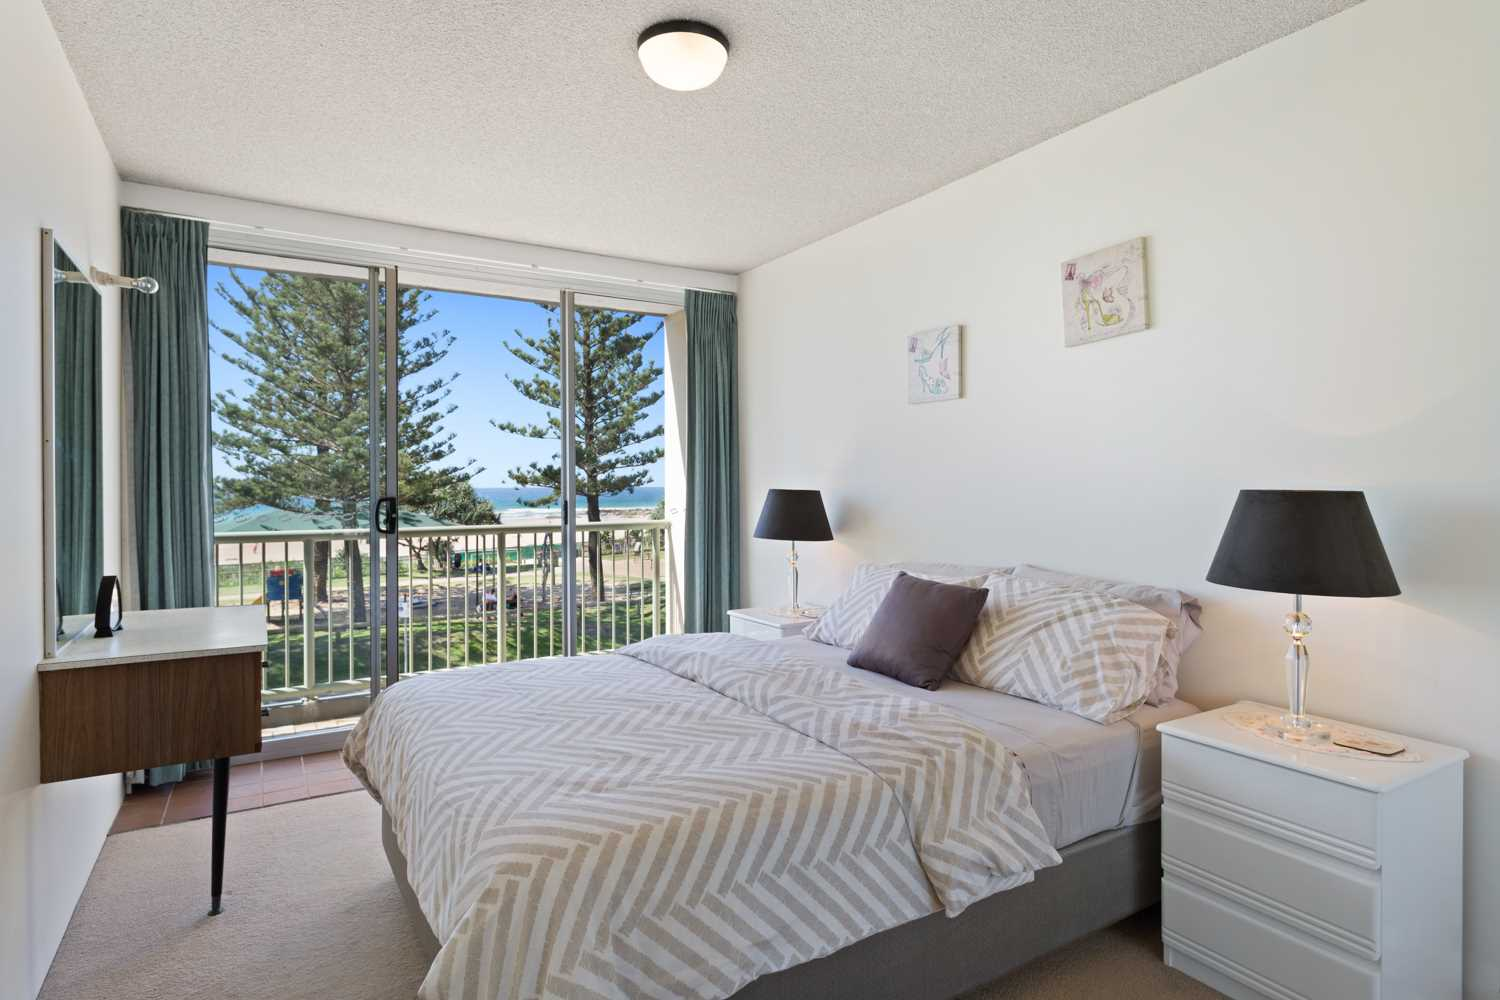 Rainbow Bay Beachfront - now is the time!